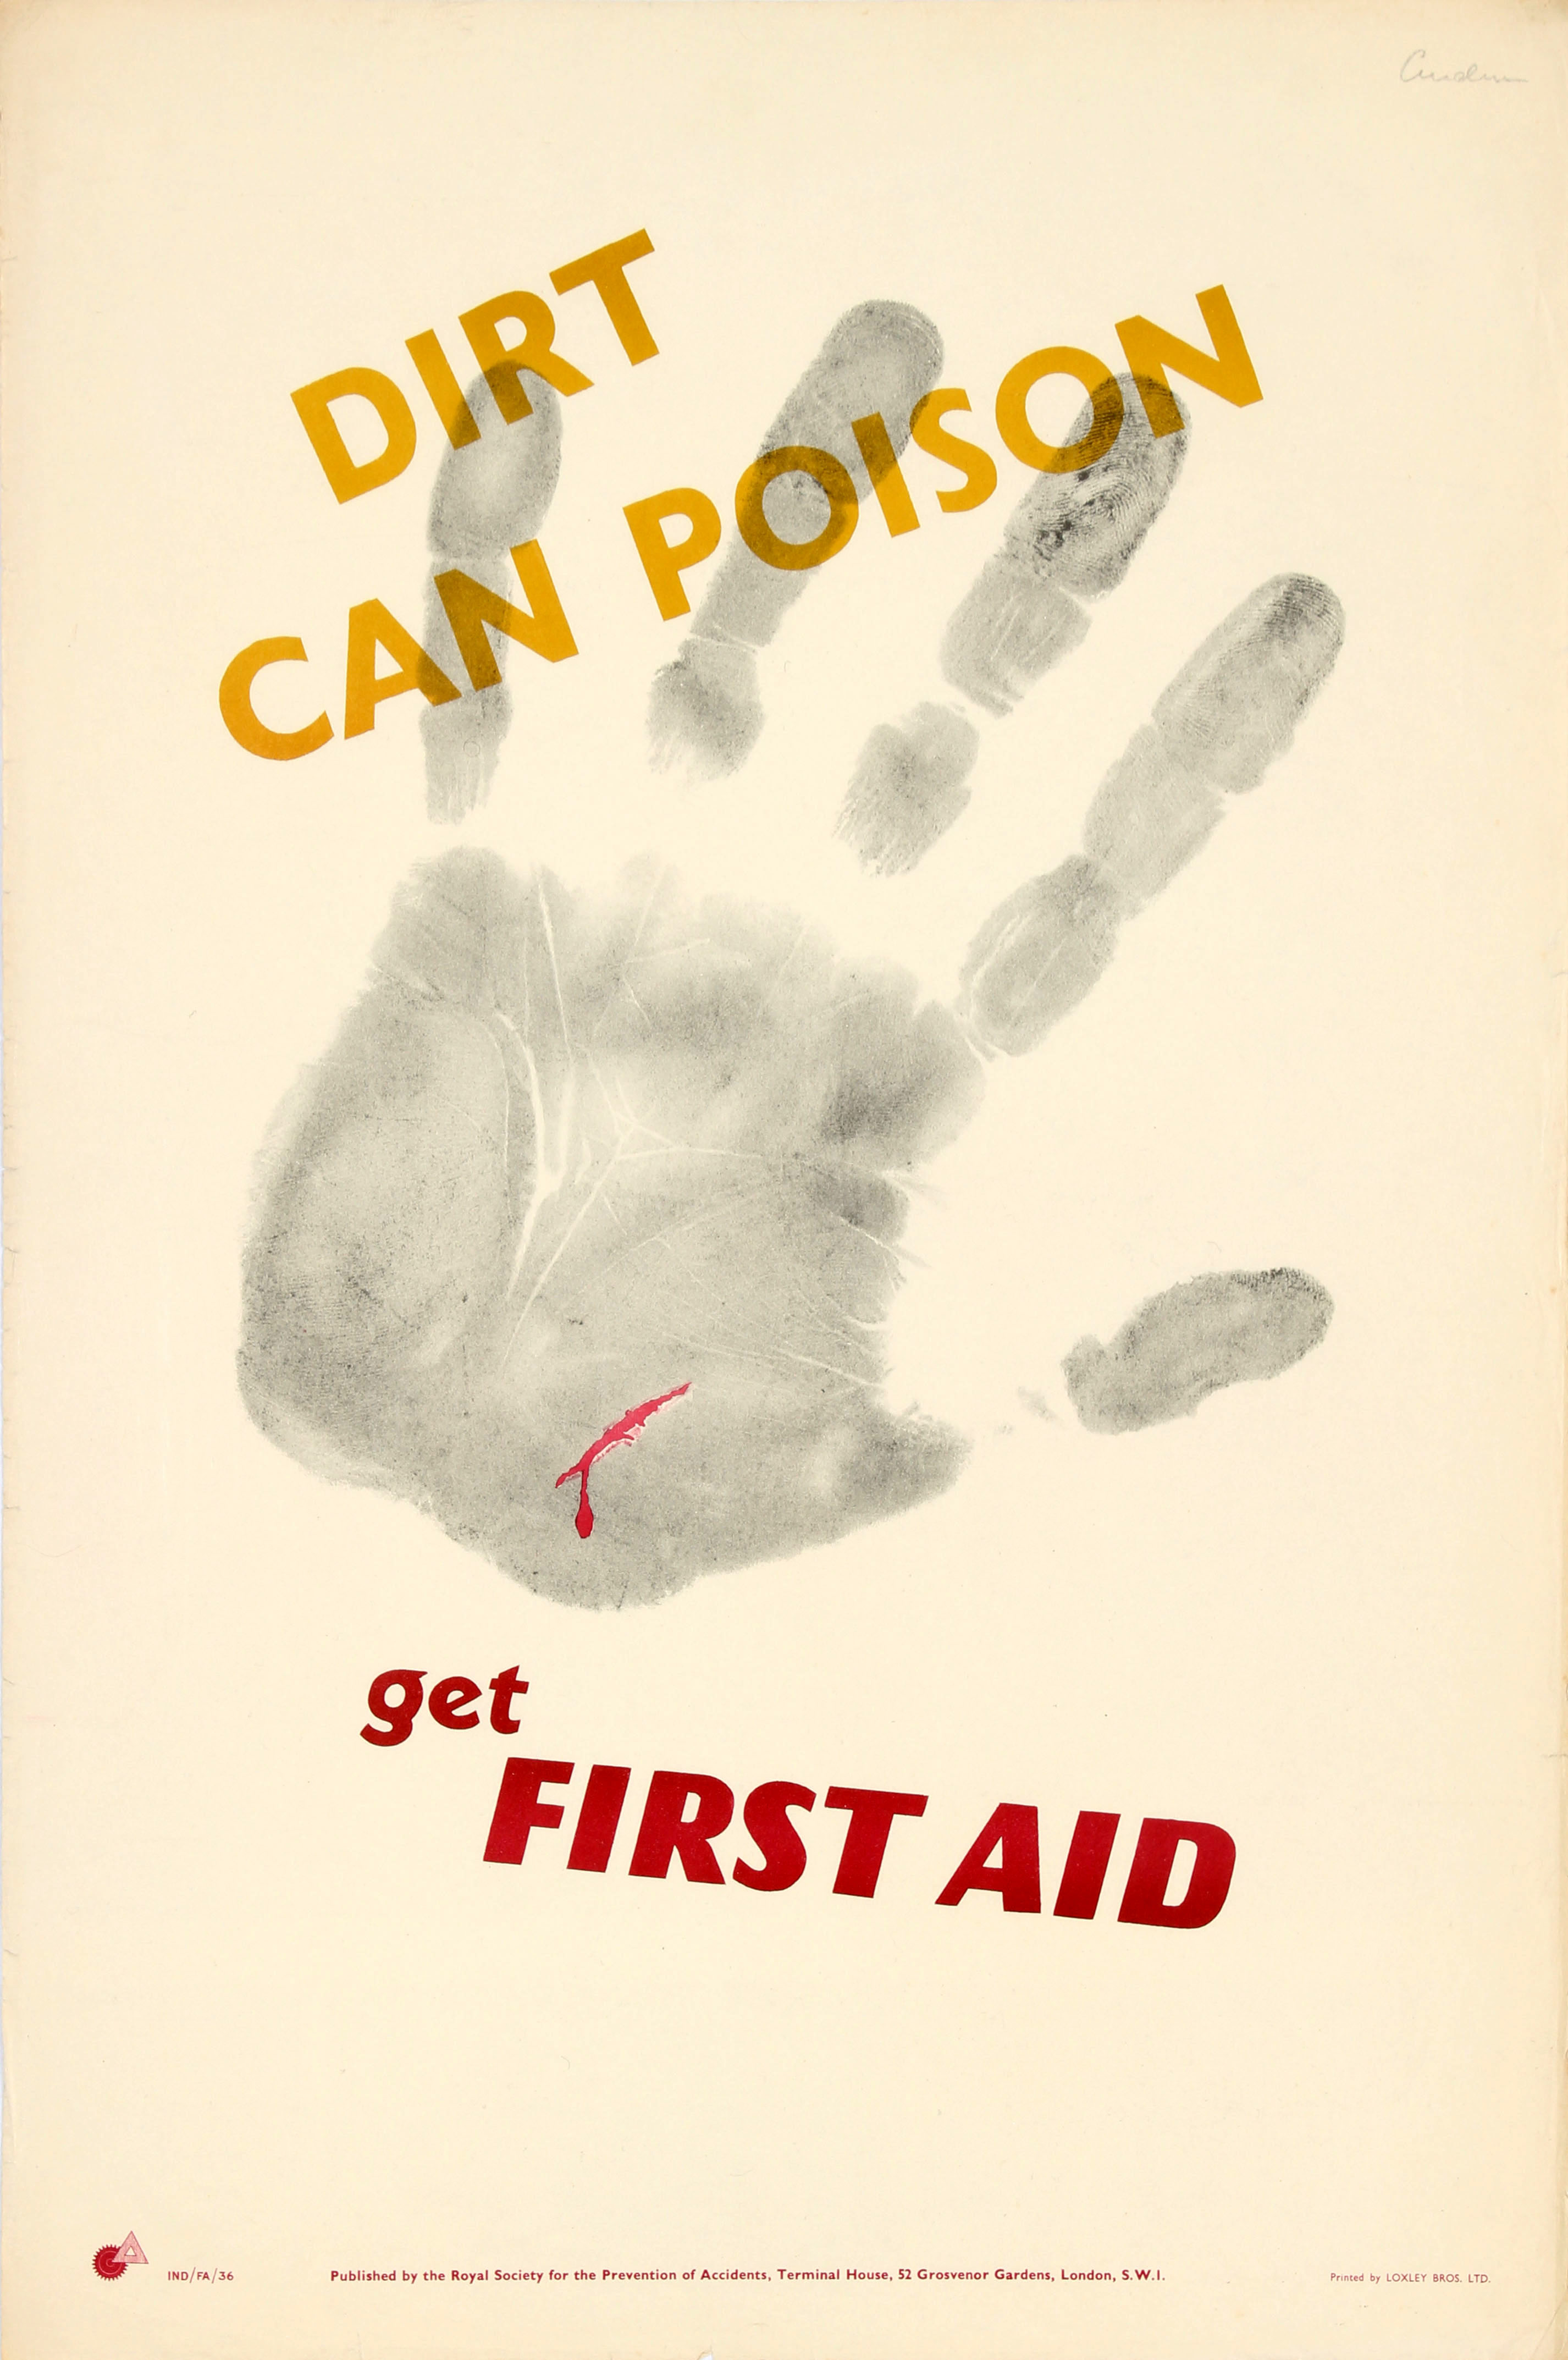 Lot 43 - Propaganda Poster Dirt Poison First Aid ROSPA Midcentury Modern